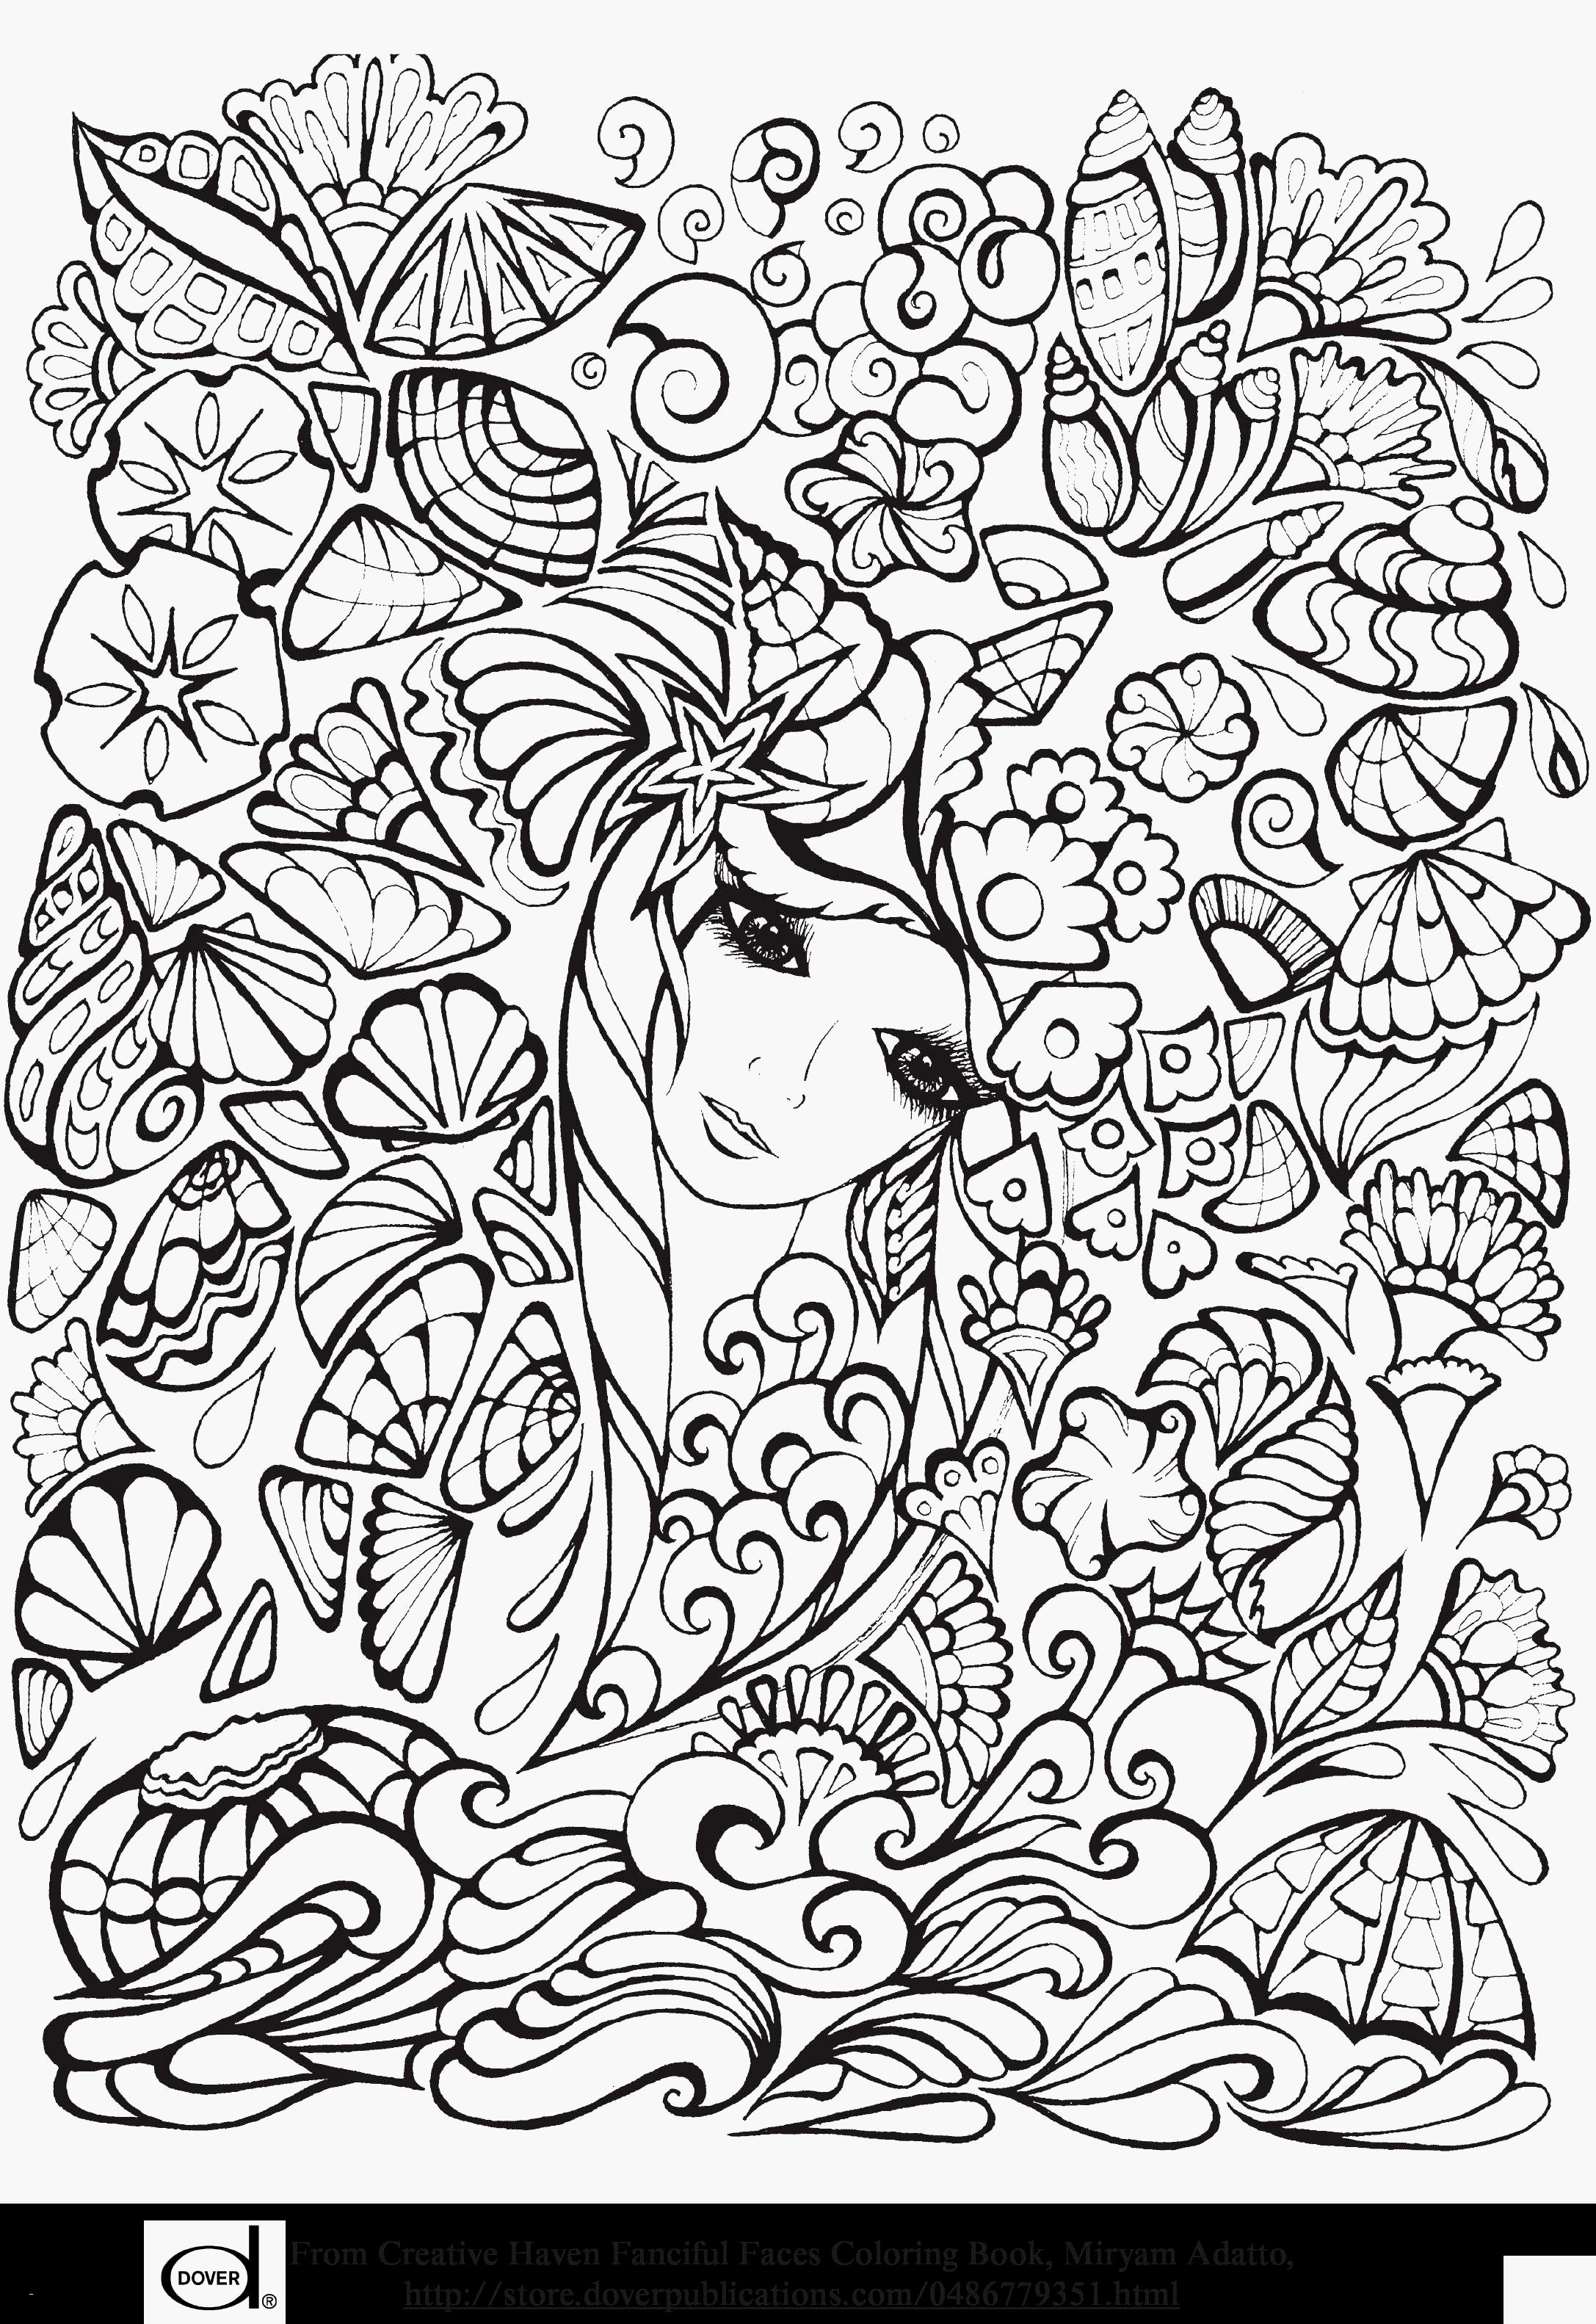 Super Wings Coloring Pages Einzigartig Wings Coloring Pages Fresh Super Wings Coloring Pages Coloring Pages Fotografieren